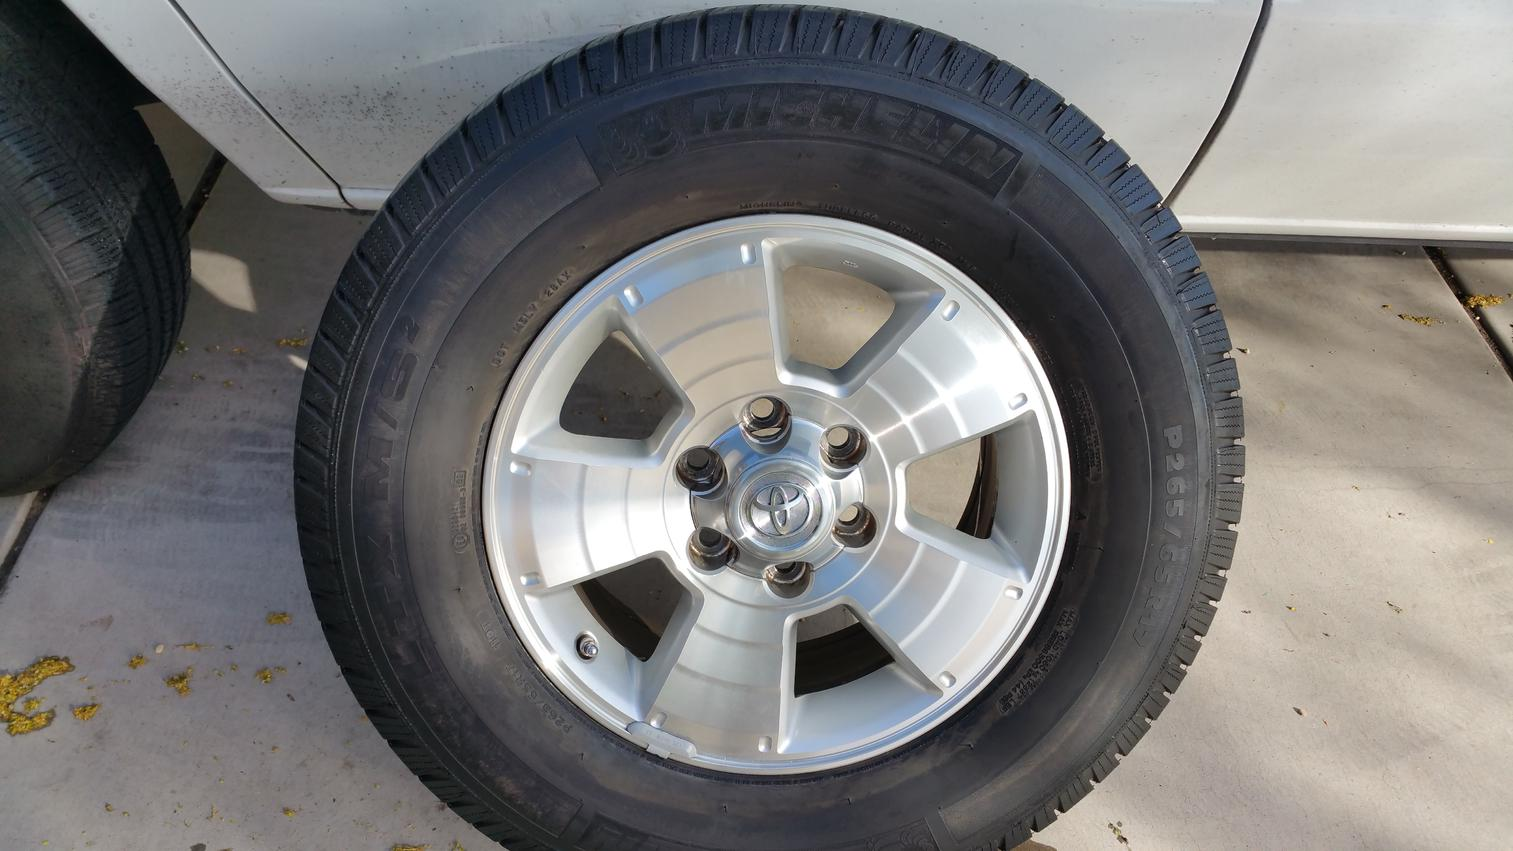 Craigslist Wheels And Tires For Sale By Owner